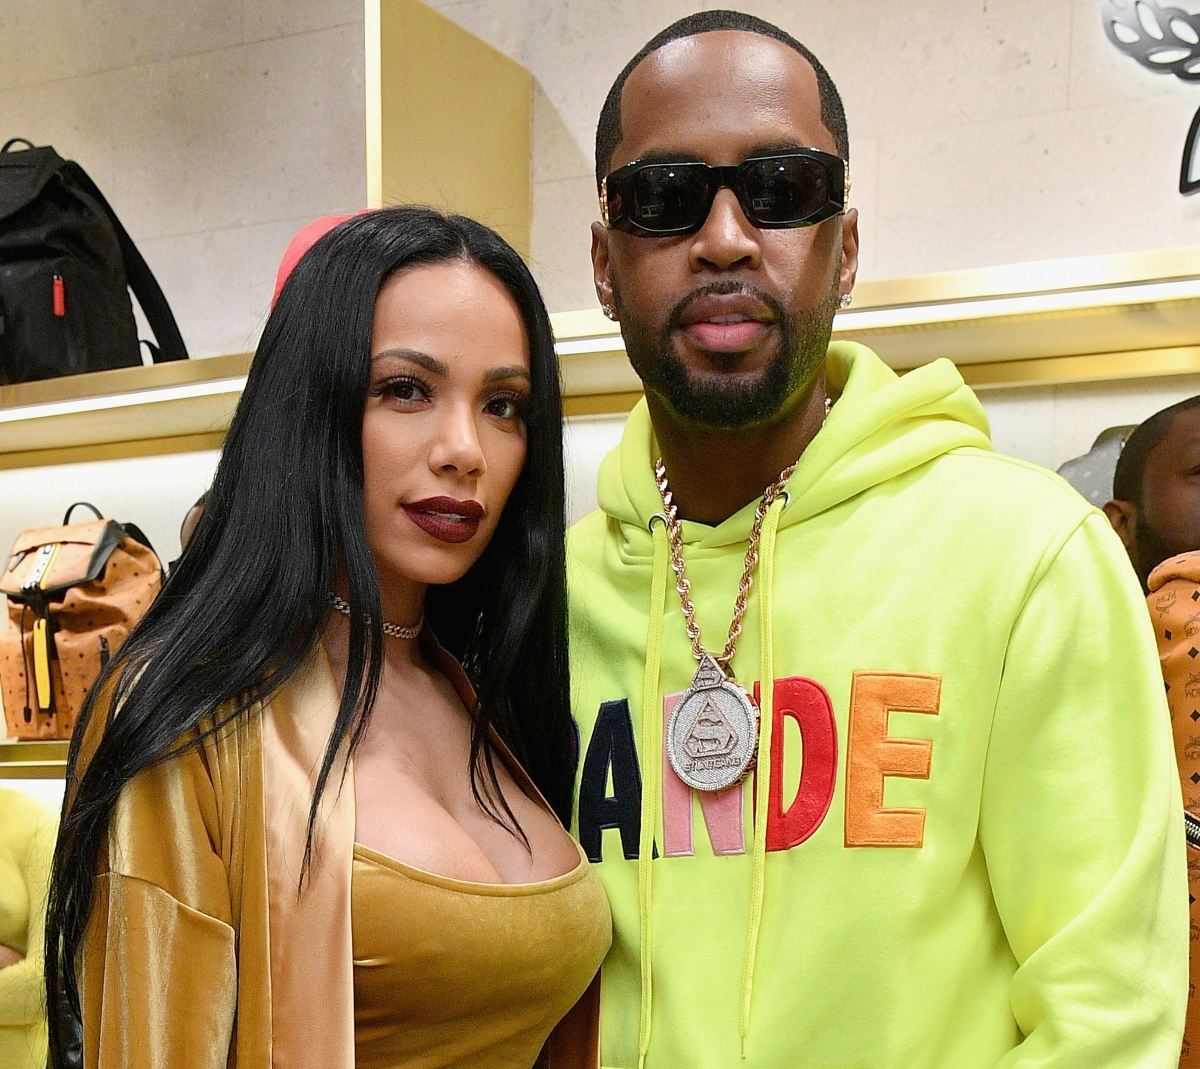 erica-mena-breaks-the-internet-with-this-new-photo-check-out-her-generous-curves